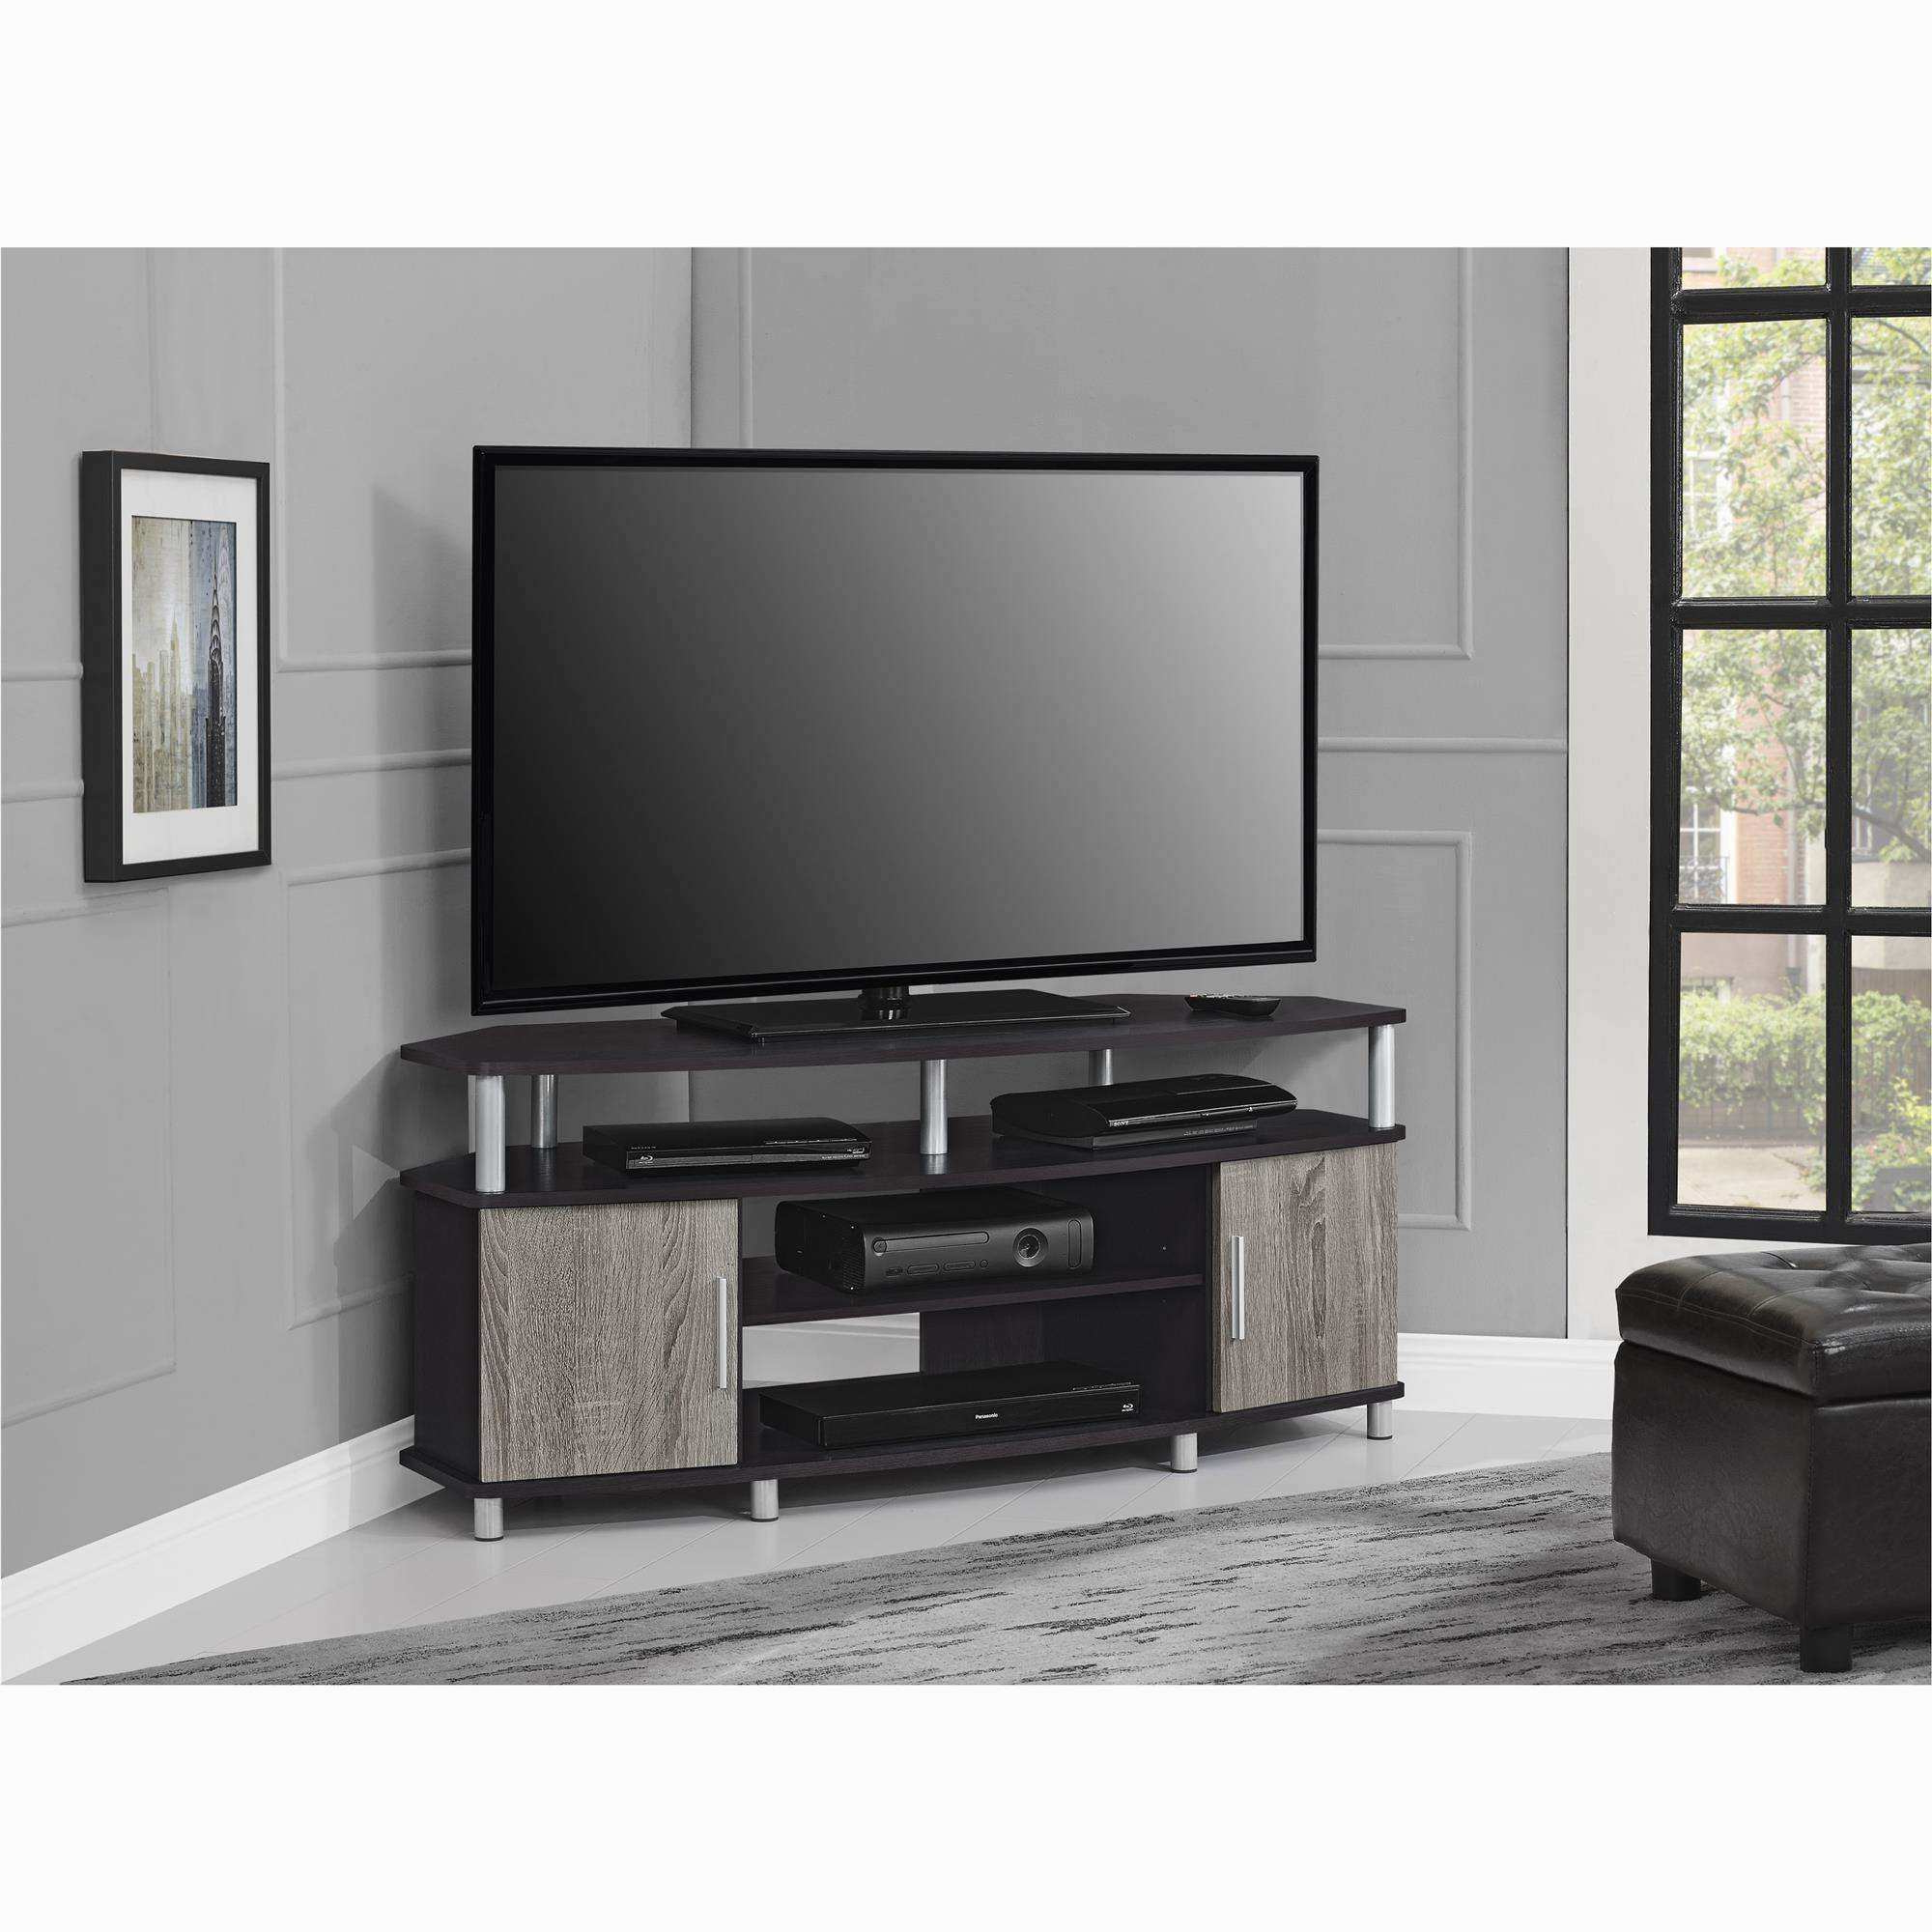 Corner Tv Cabinets For Flat Screen Throughout Preferred Absolutely Ideas 50 Corner Tv Stand Pedestal Stands For Flat Screens (View 7 of 20)